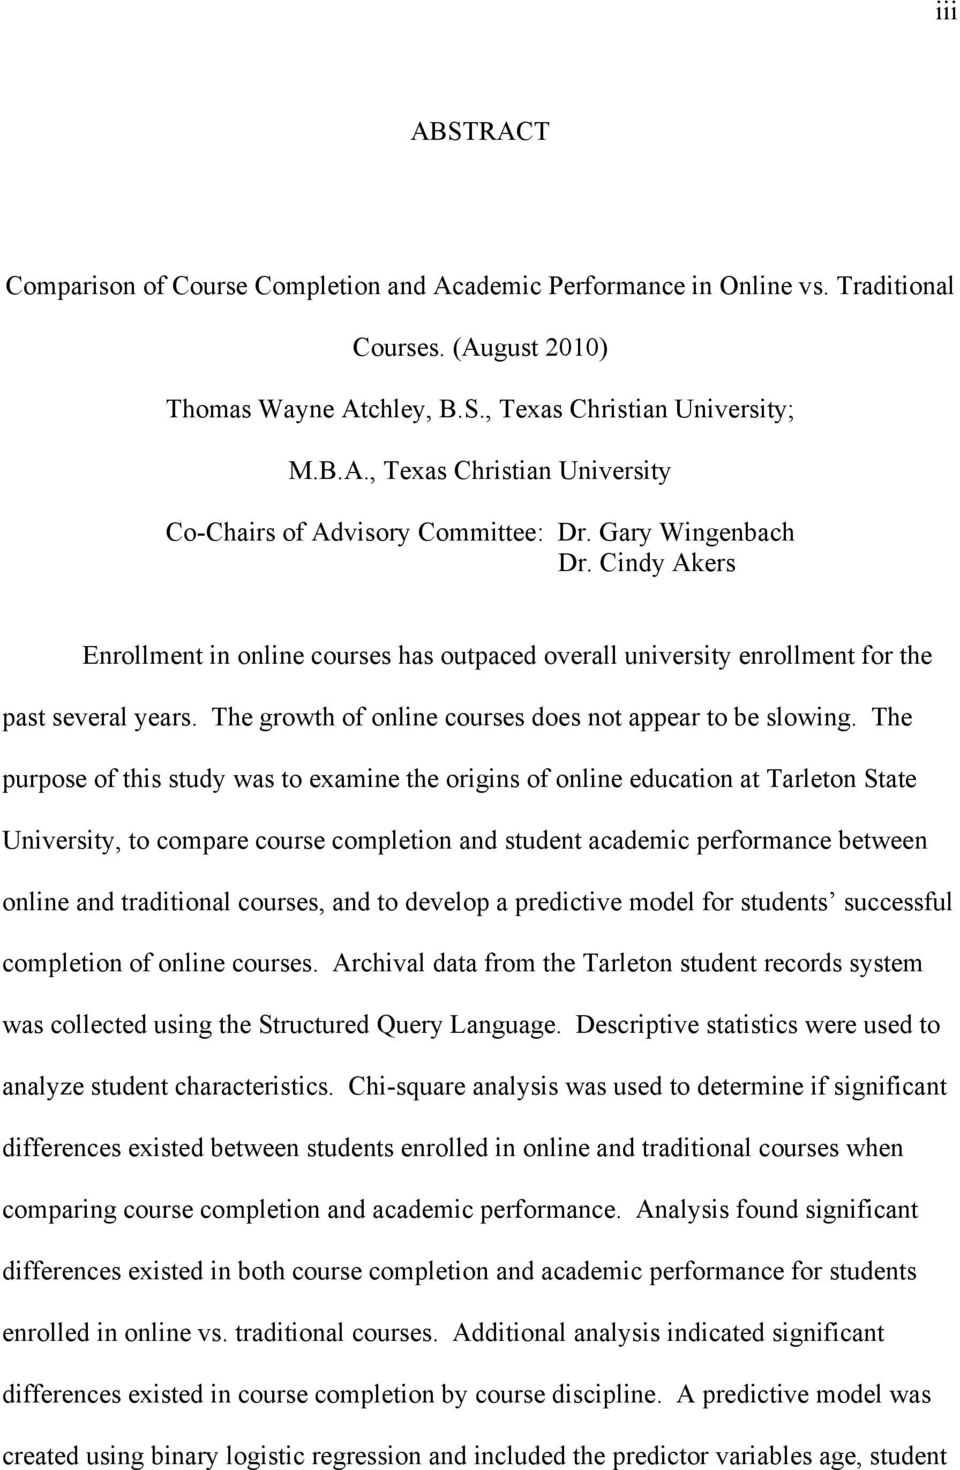 The purpose of this study was to examine the origins of online education at Tarleton State University, to compare course completion and student academic performance between online and traditional